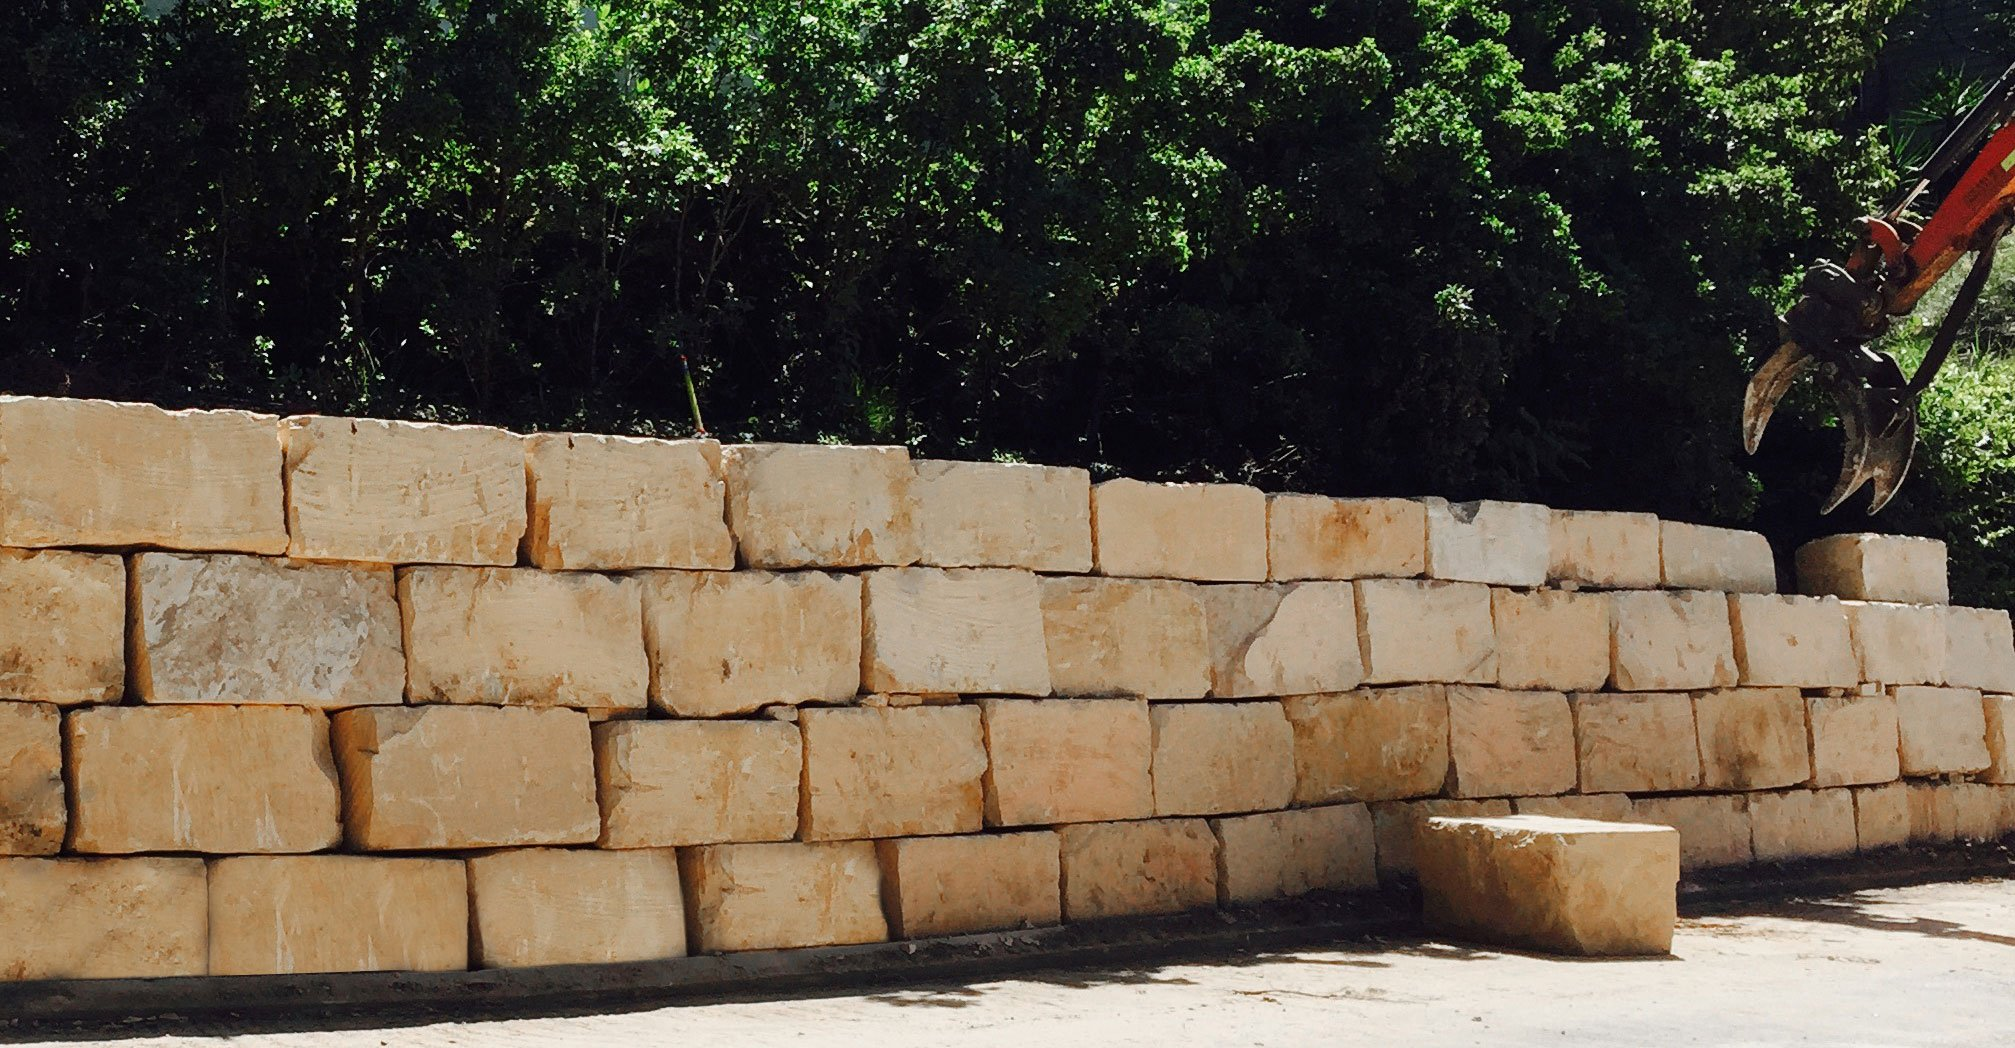 Things to remember when building a sandstone retaining wall